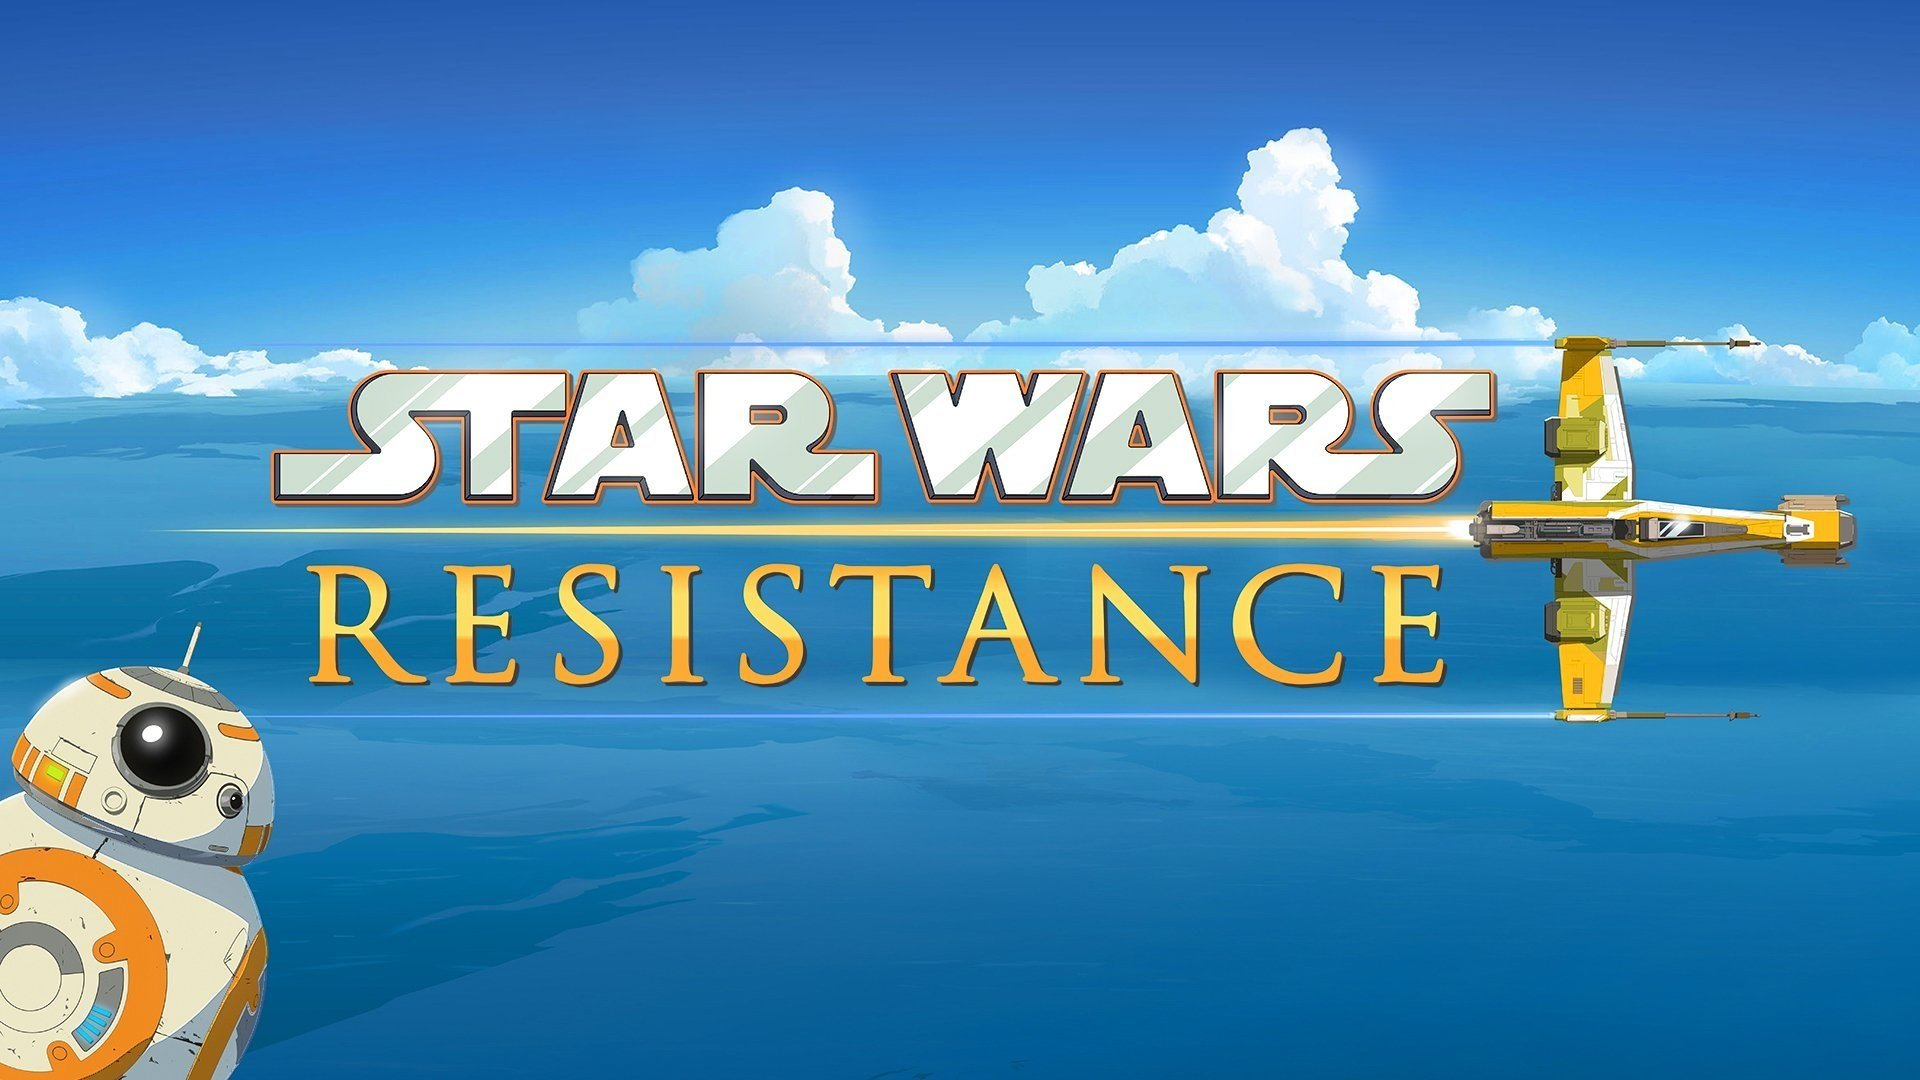 New STAR WARS Animated Series Centered On RESISTANCE Pilots Coming This Fall